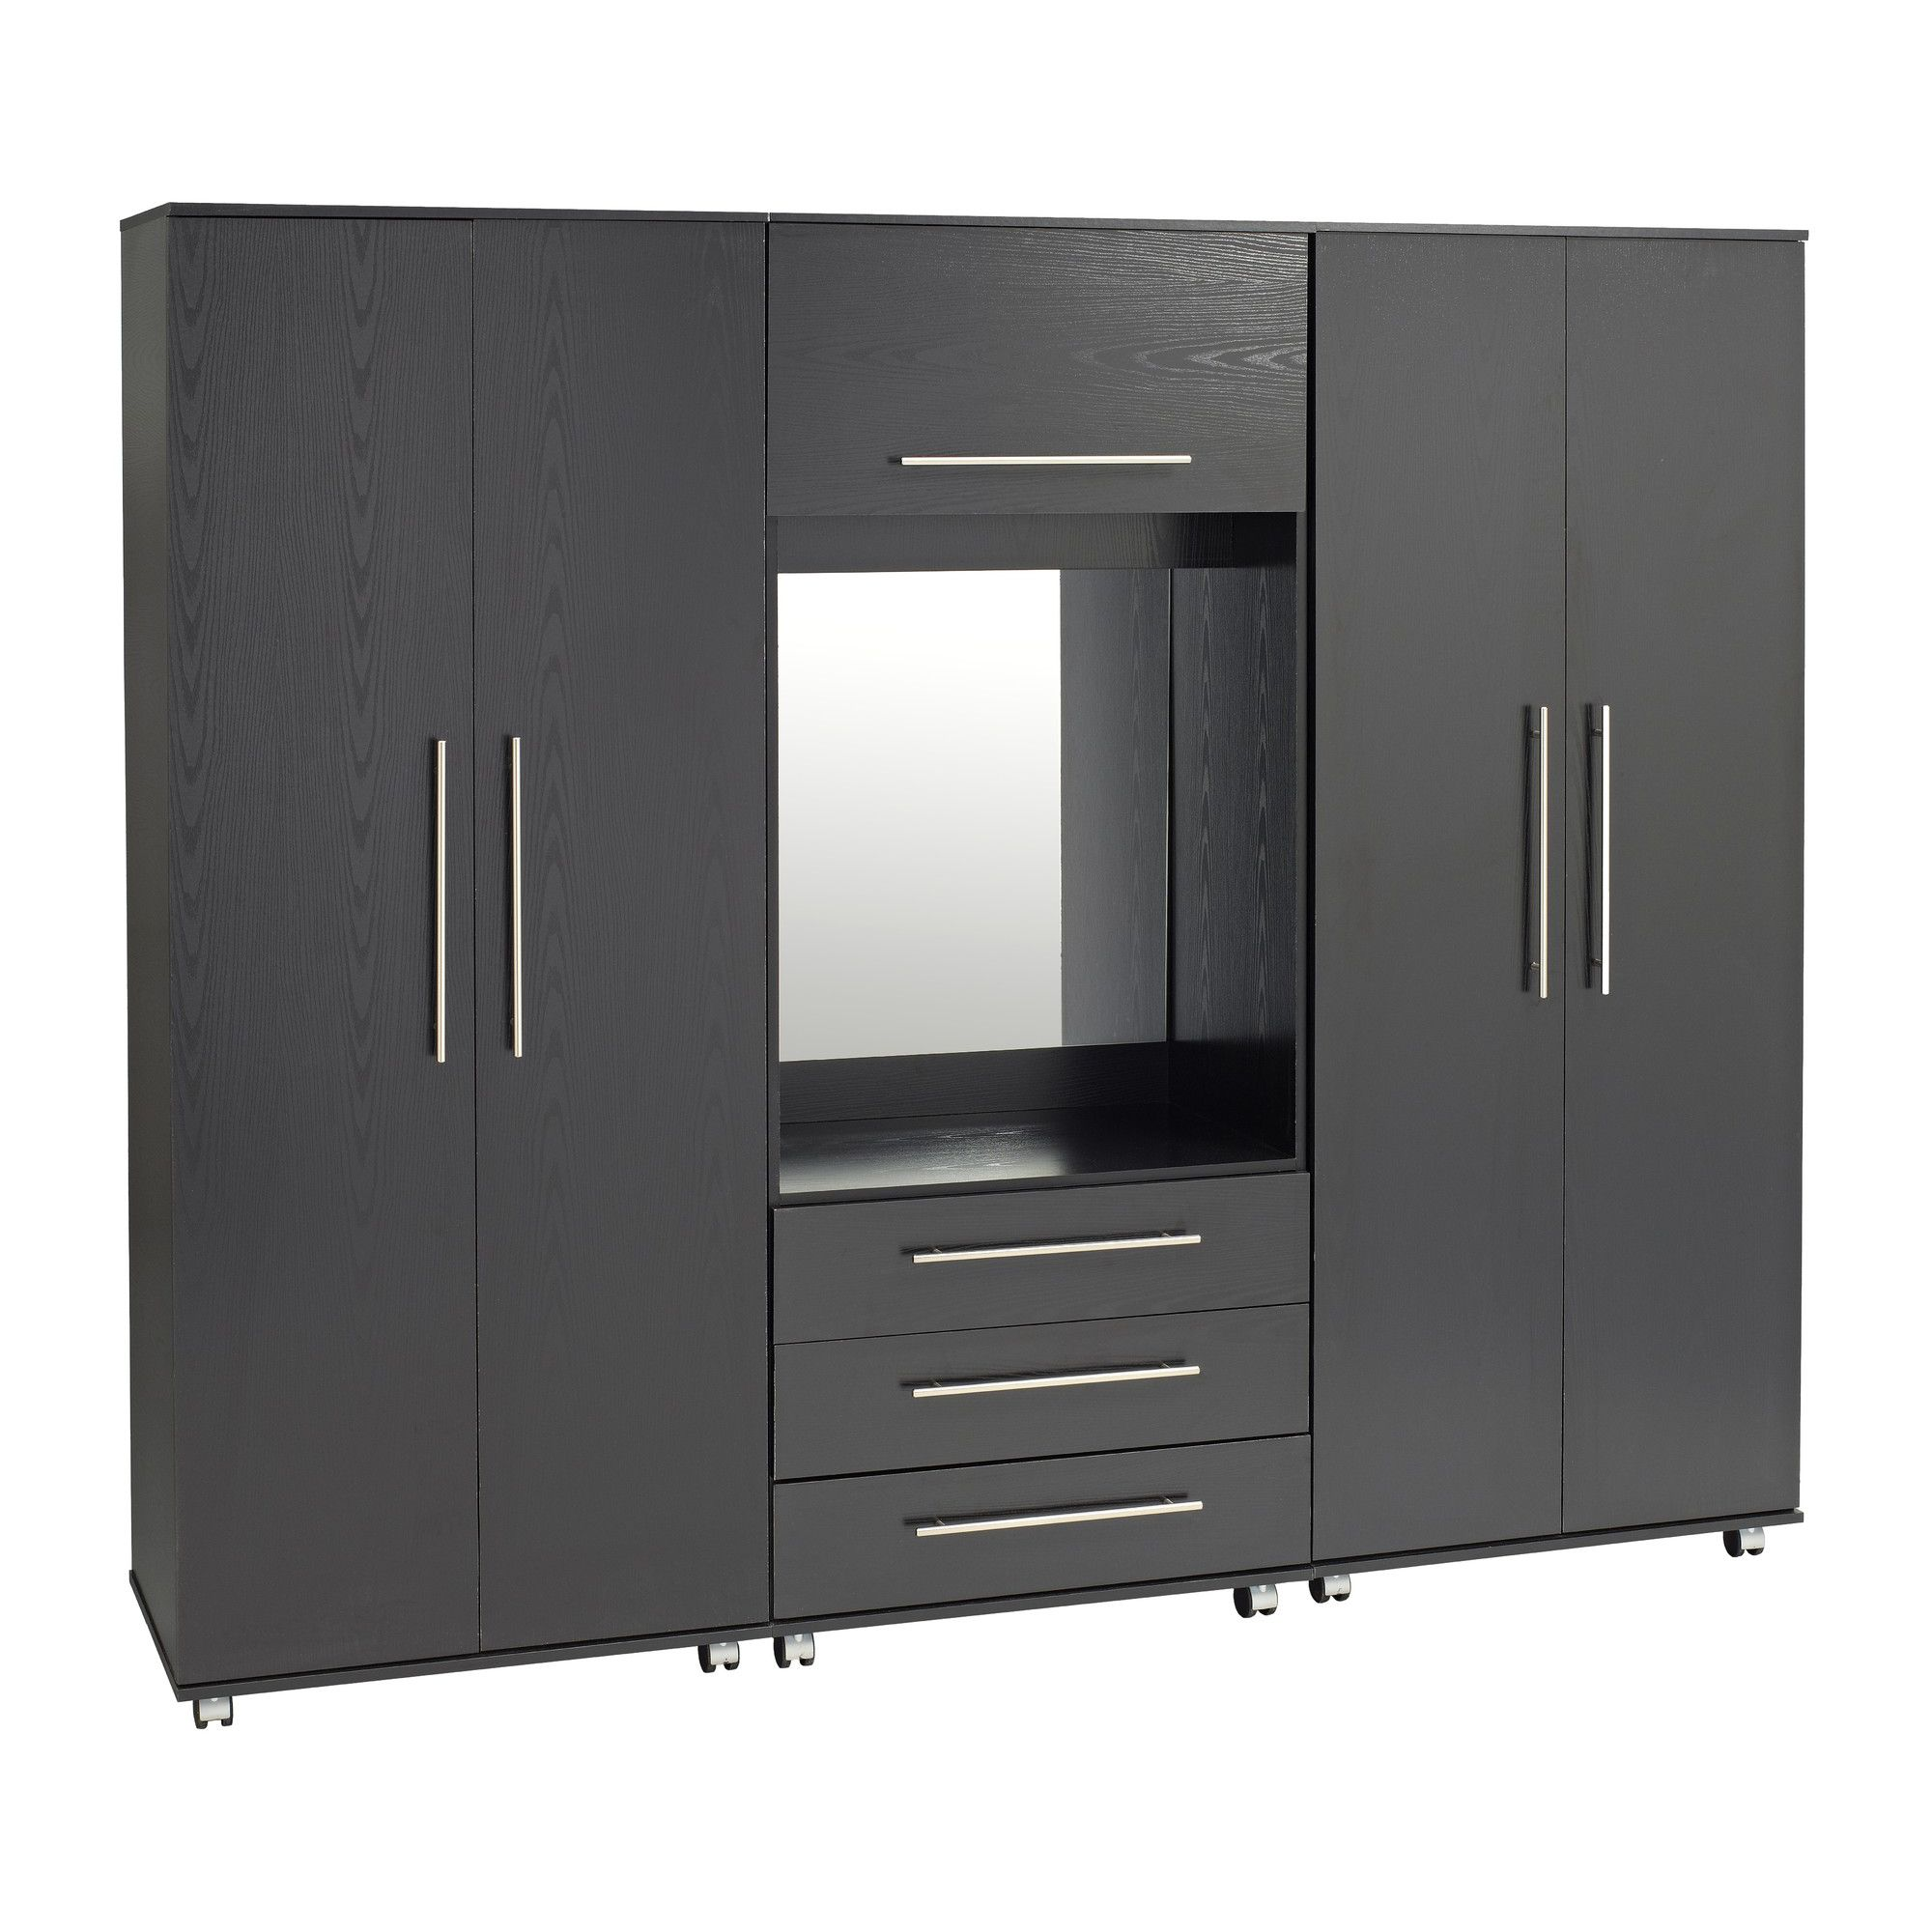 Ideal Furniture Bobby Fitment Wardrobe - Black at Tesco Direct